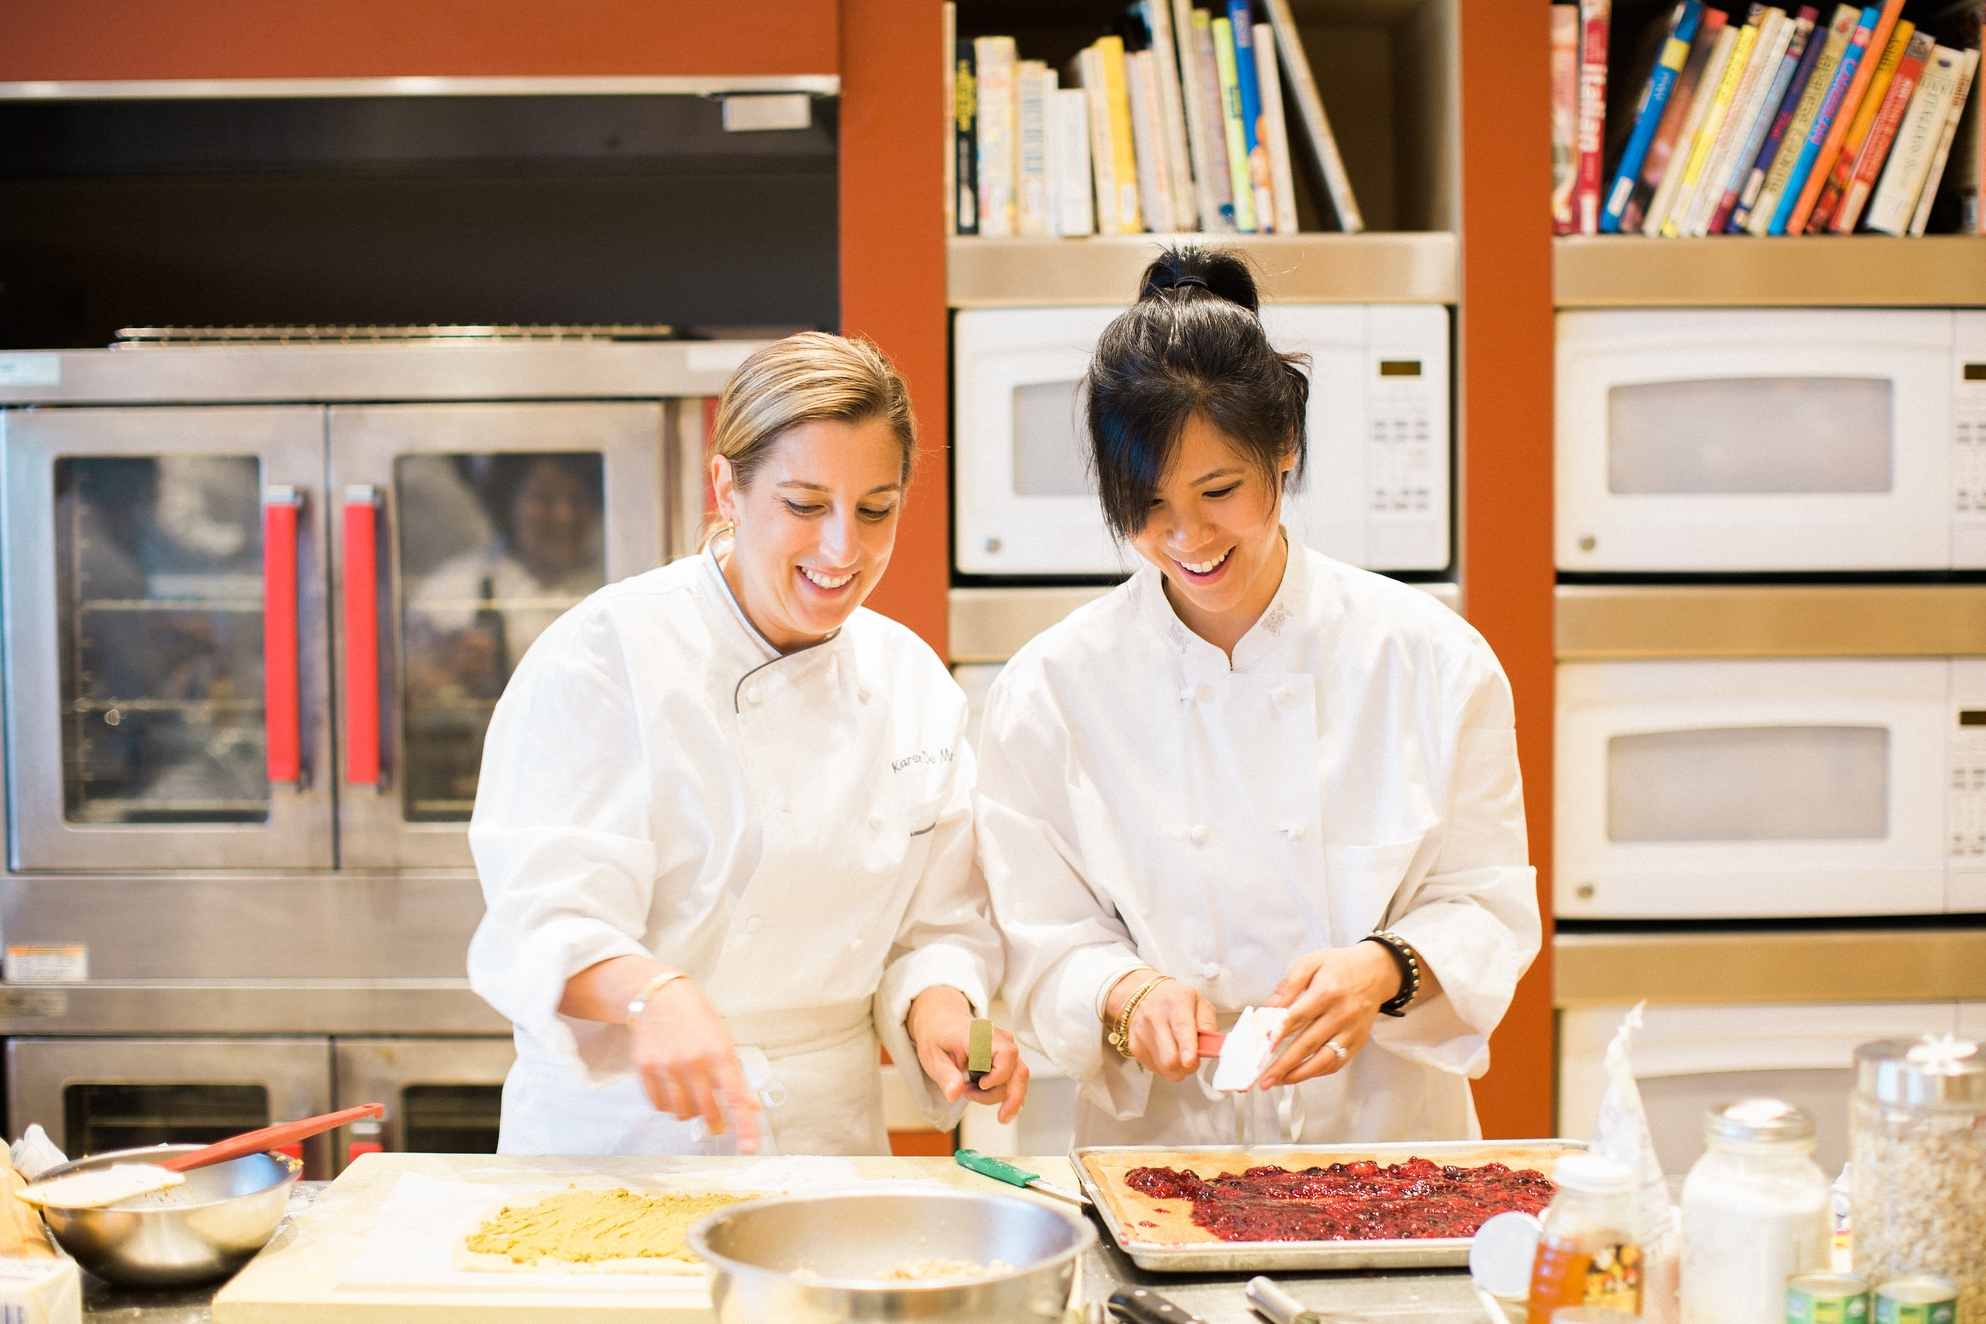 With Pastry Chef Karen DeMasco